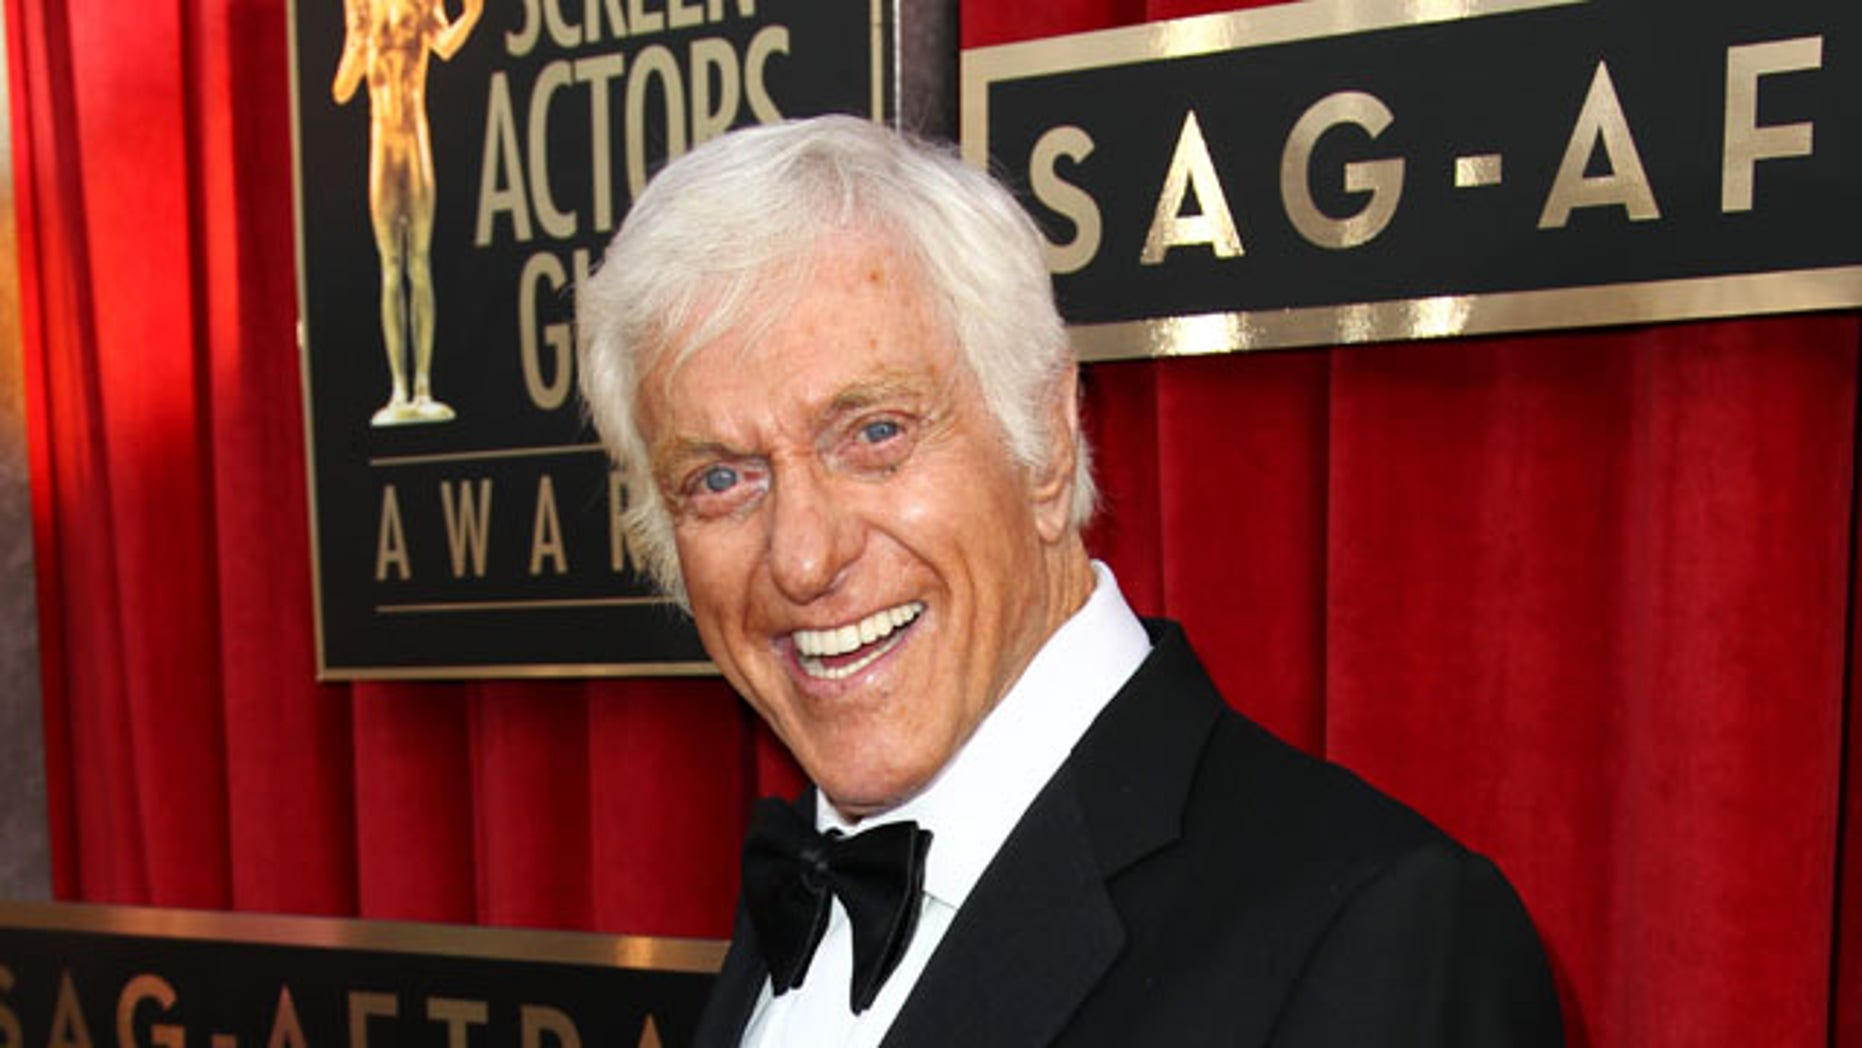 FILE - This Jan. 27, 2013 file photo shows actor Dick Van Dyke at the 19th Annual Screen Actors Guild Awards at the Shrine Auditorium in Los Angeles. (Photo by Matt Sayles/Invision/AP, file)